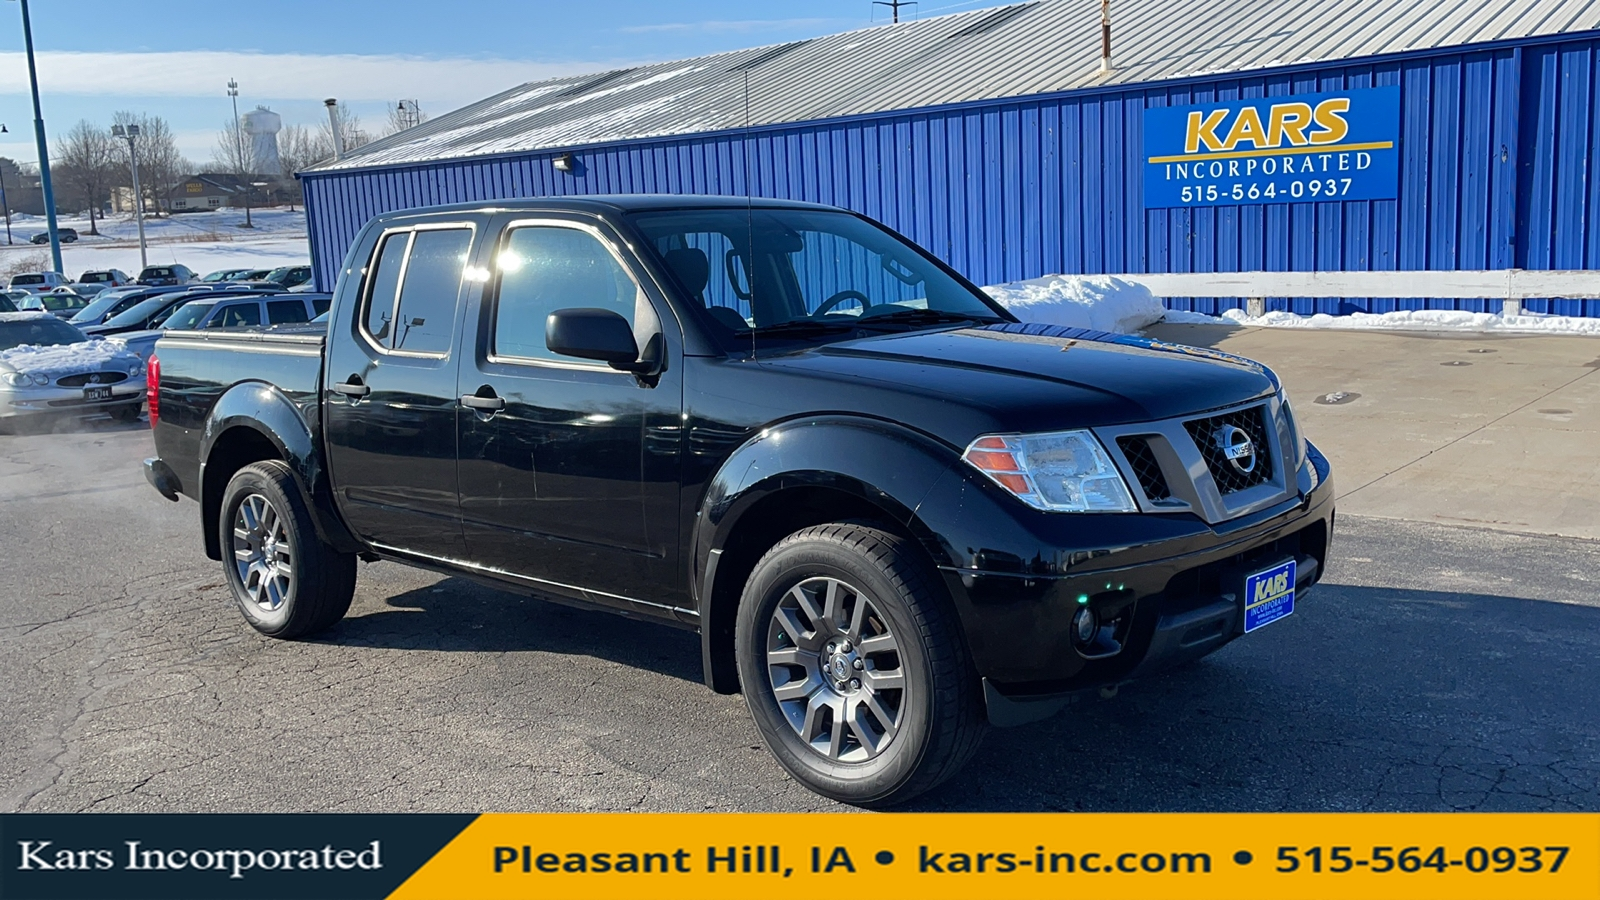 2012 Nissan Frontier S 4WD Crew Cab  - C36625P  - Kars Incorporated